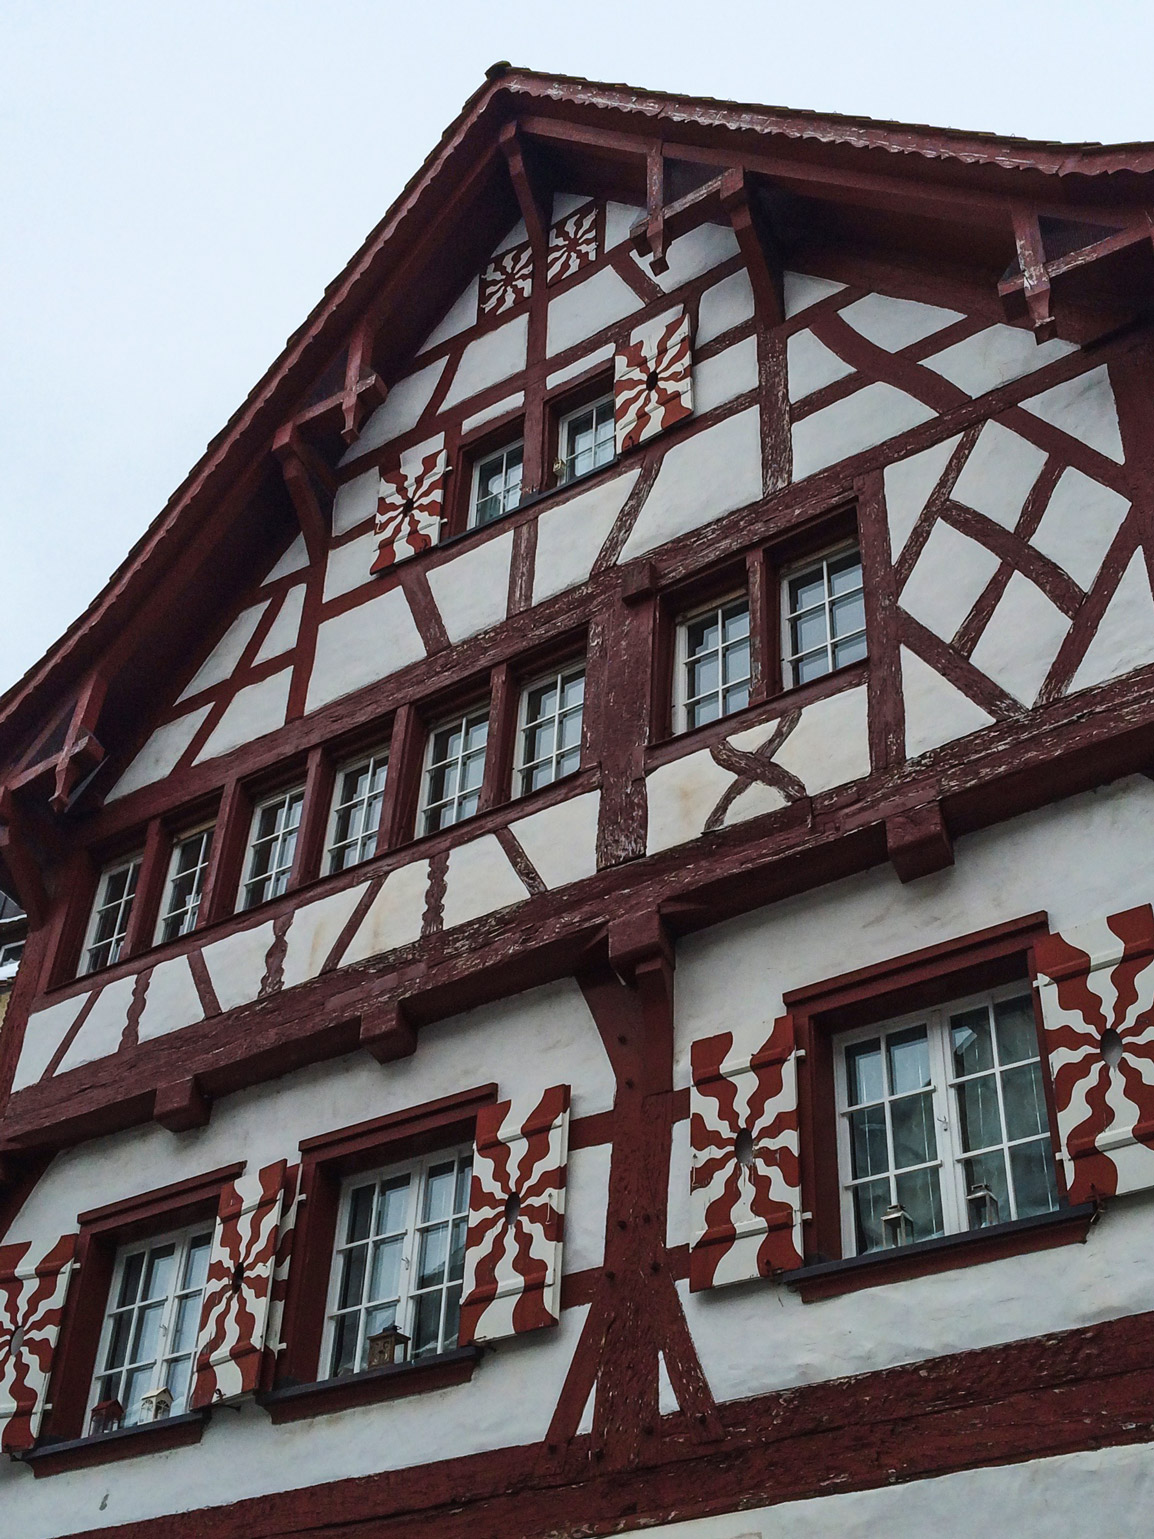 Candy-like house in charming Stein am Rhein Switzerland